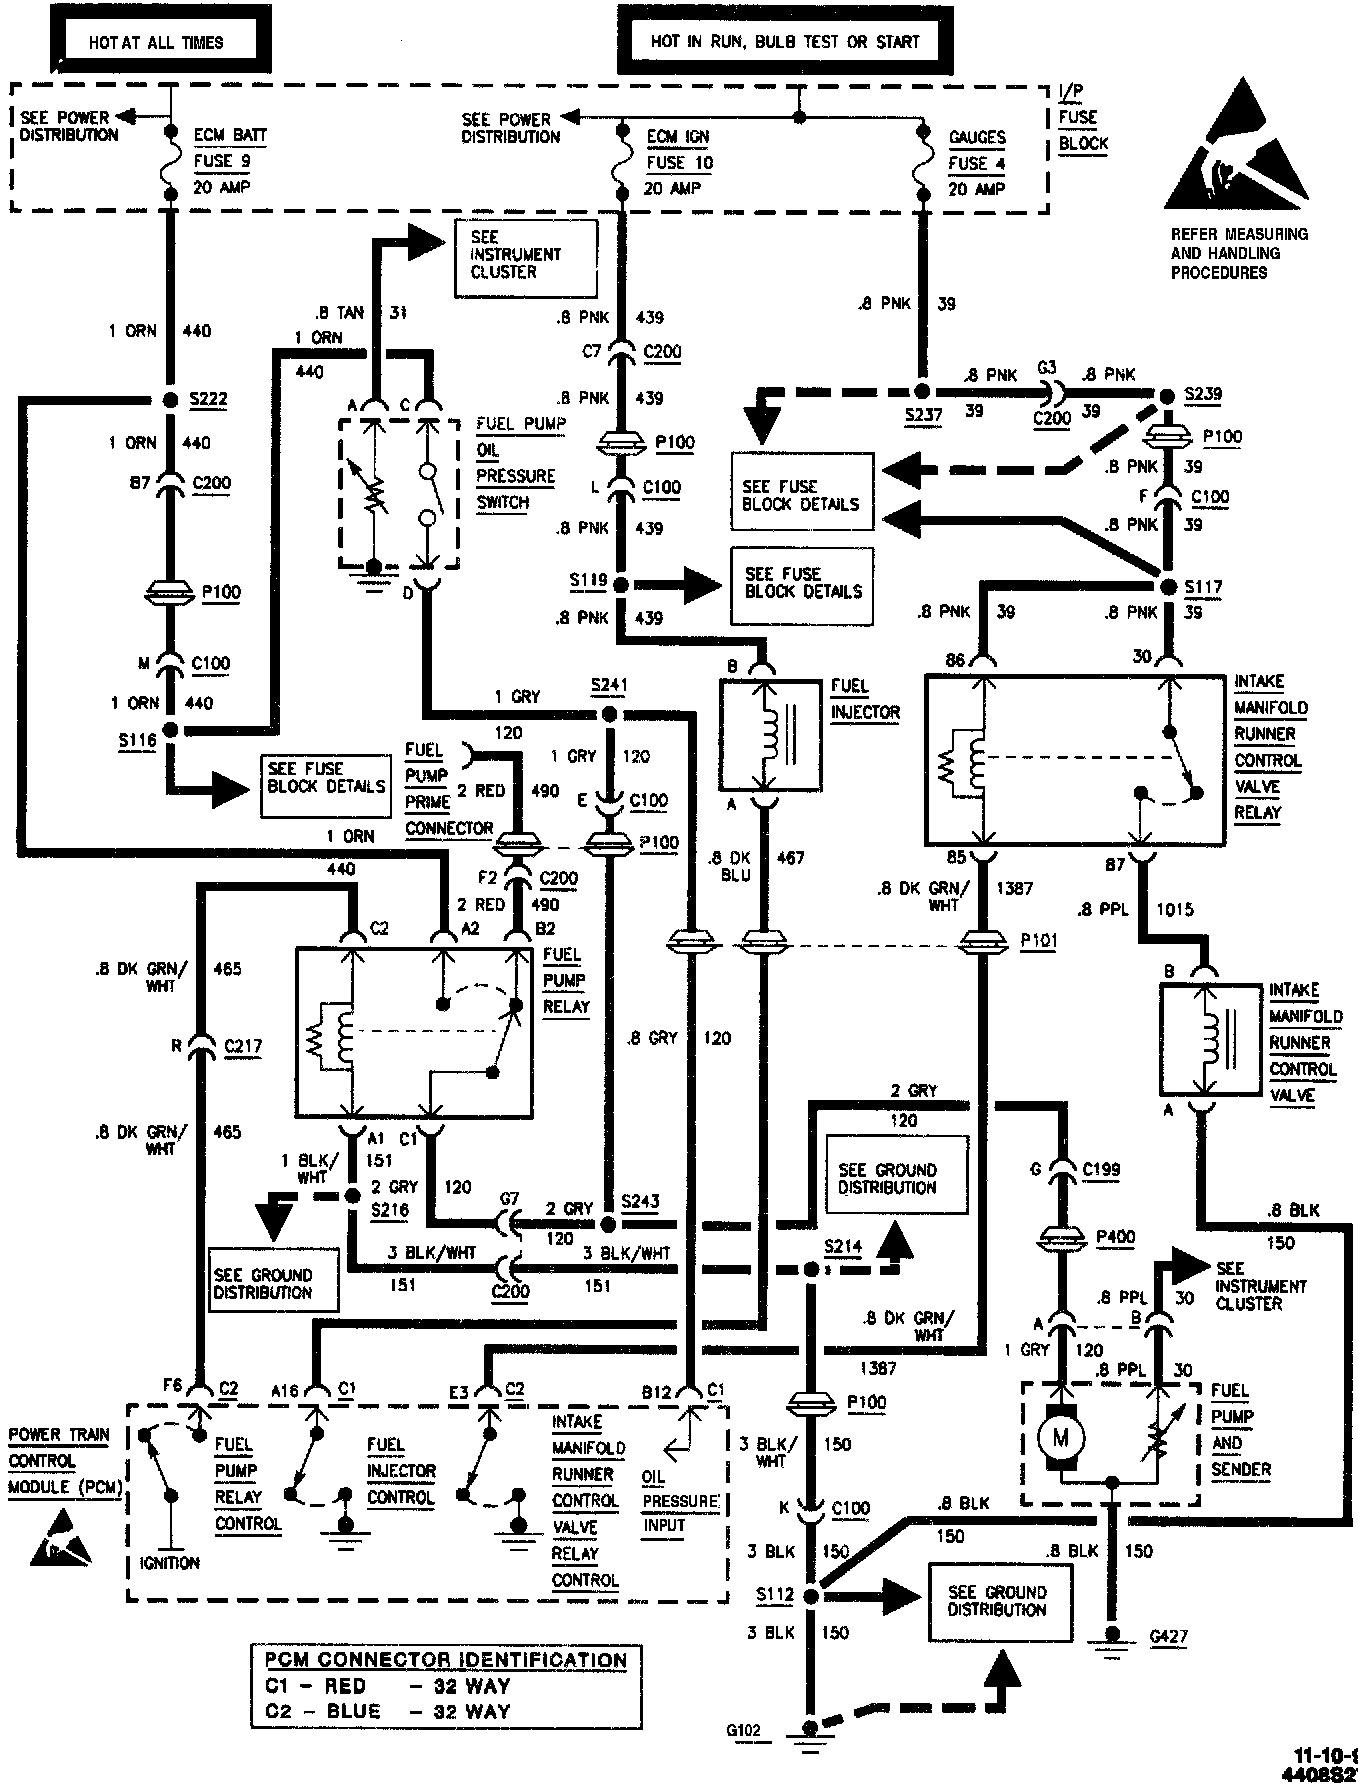 1996 Chevrolet Wiring Harness Wiring Harness Diagram Wiring Diagrams